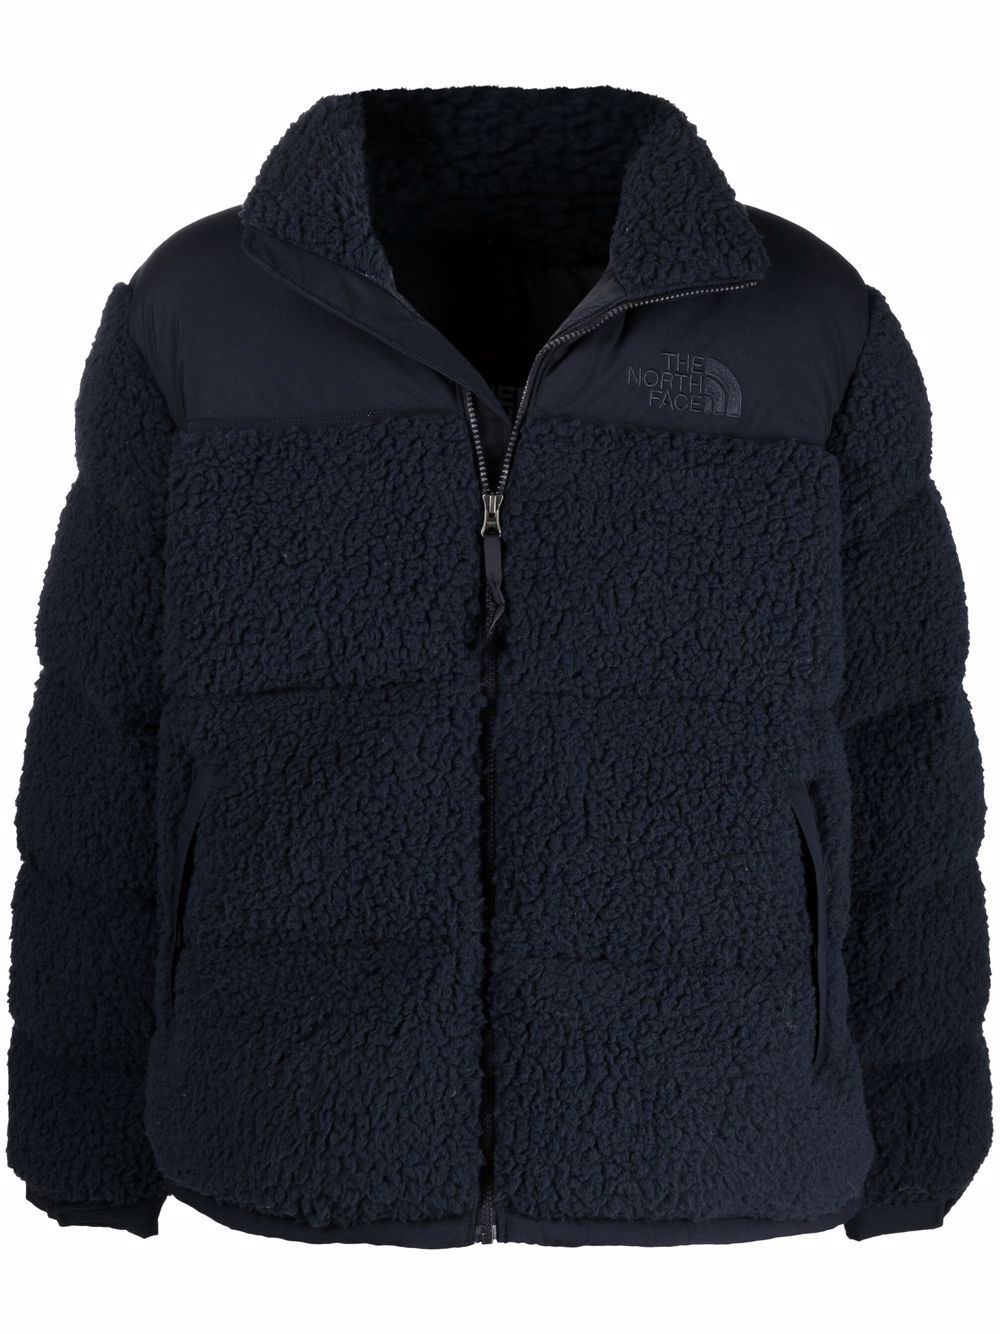 giacca sherpa nuptse unisex blu THE NORTH FACE | Giacche | NF0A5A84RG11